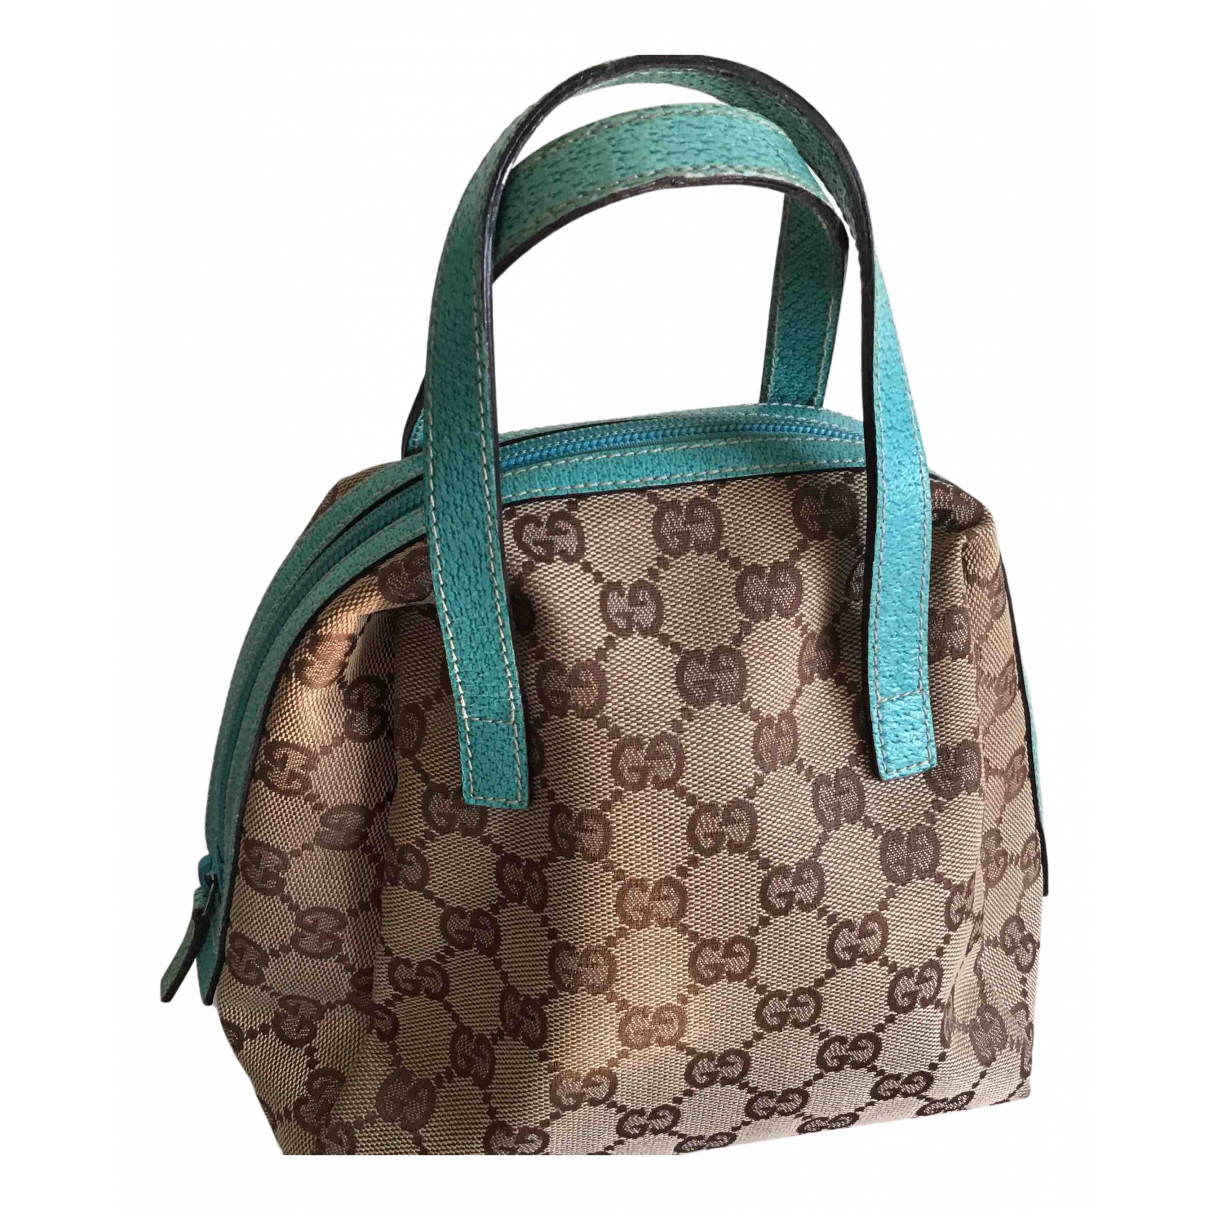 Gucci N Beige Cloth handbag for Women N